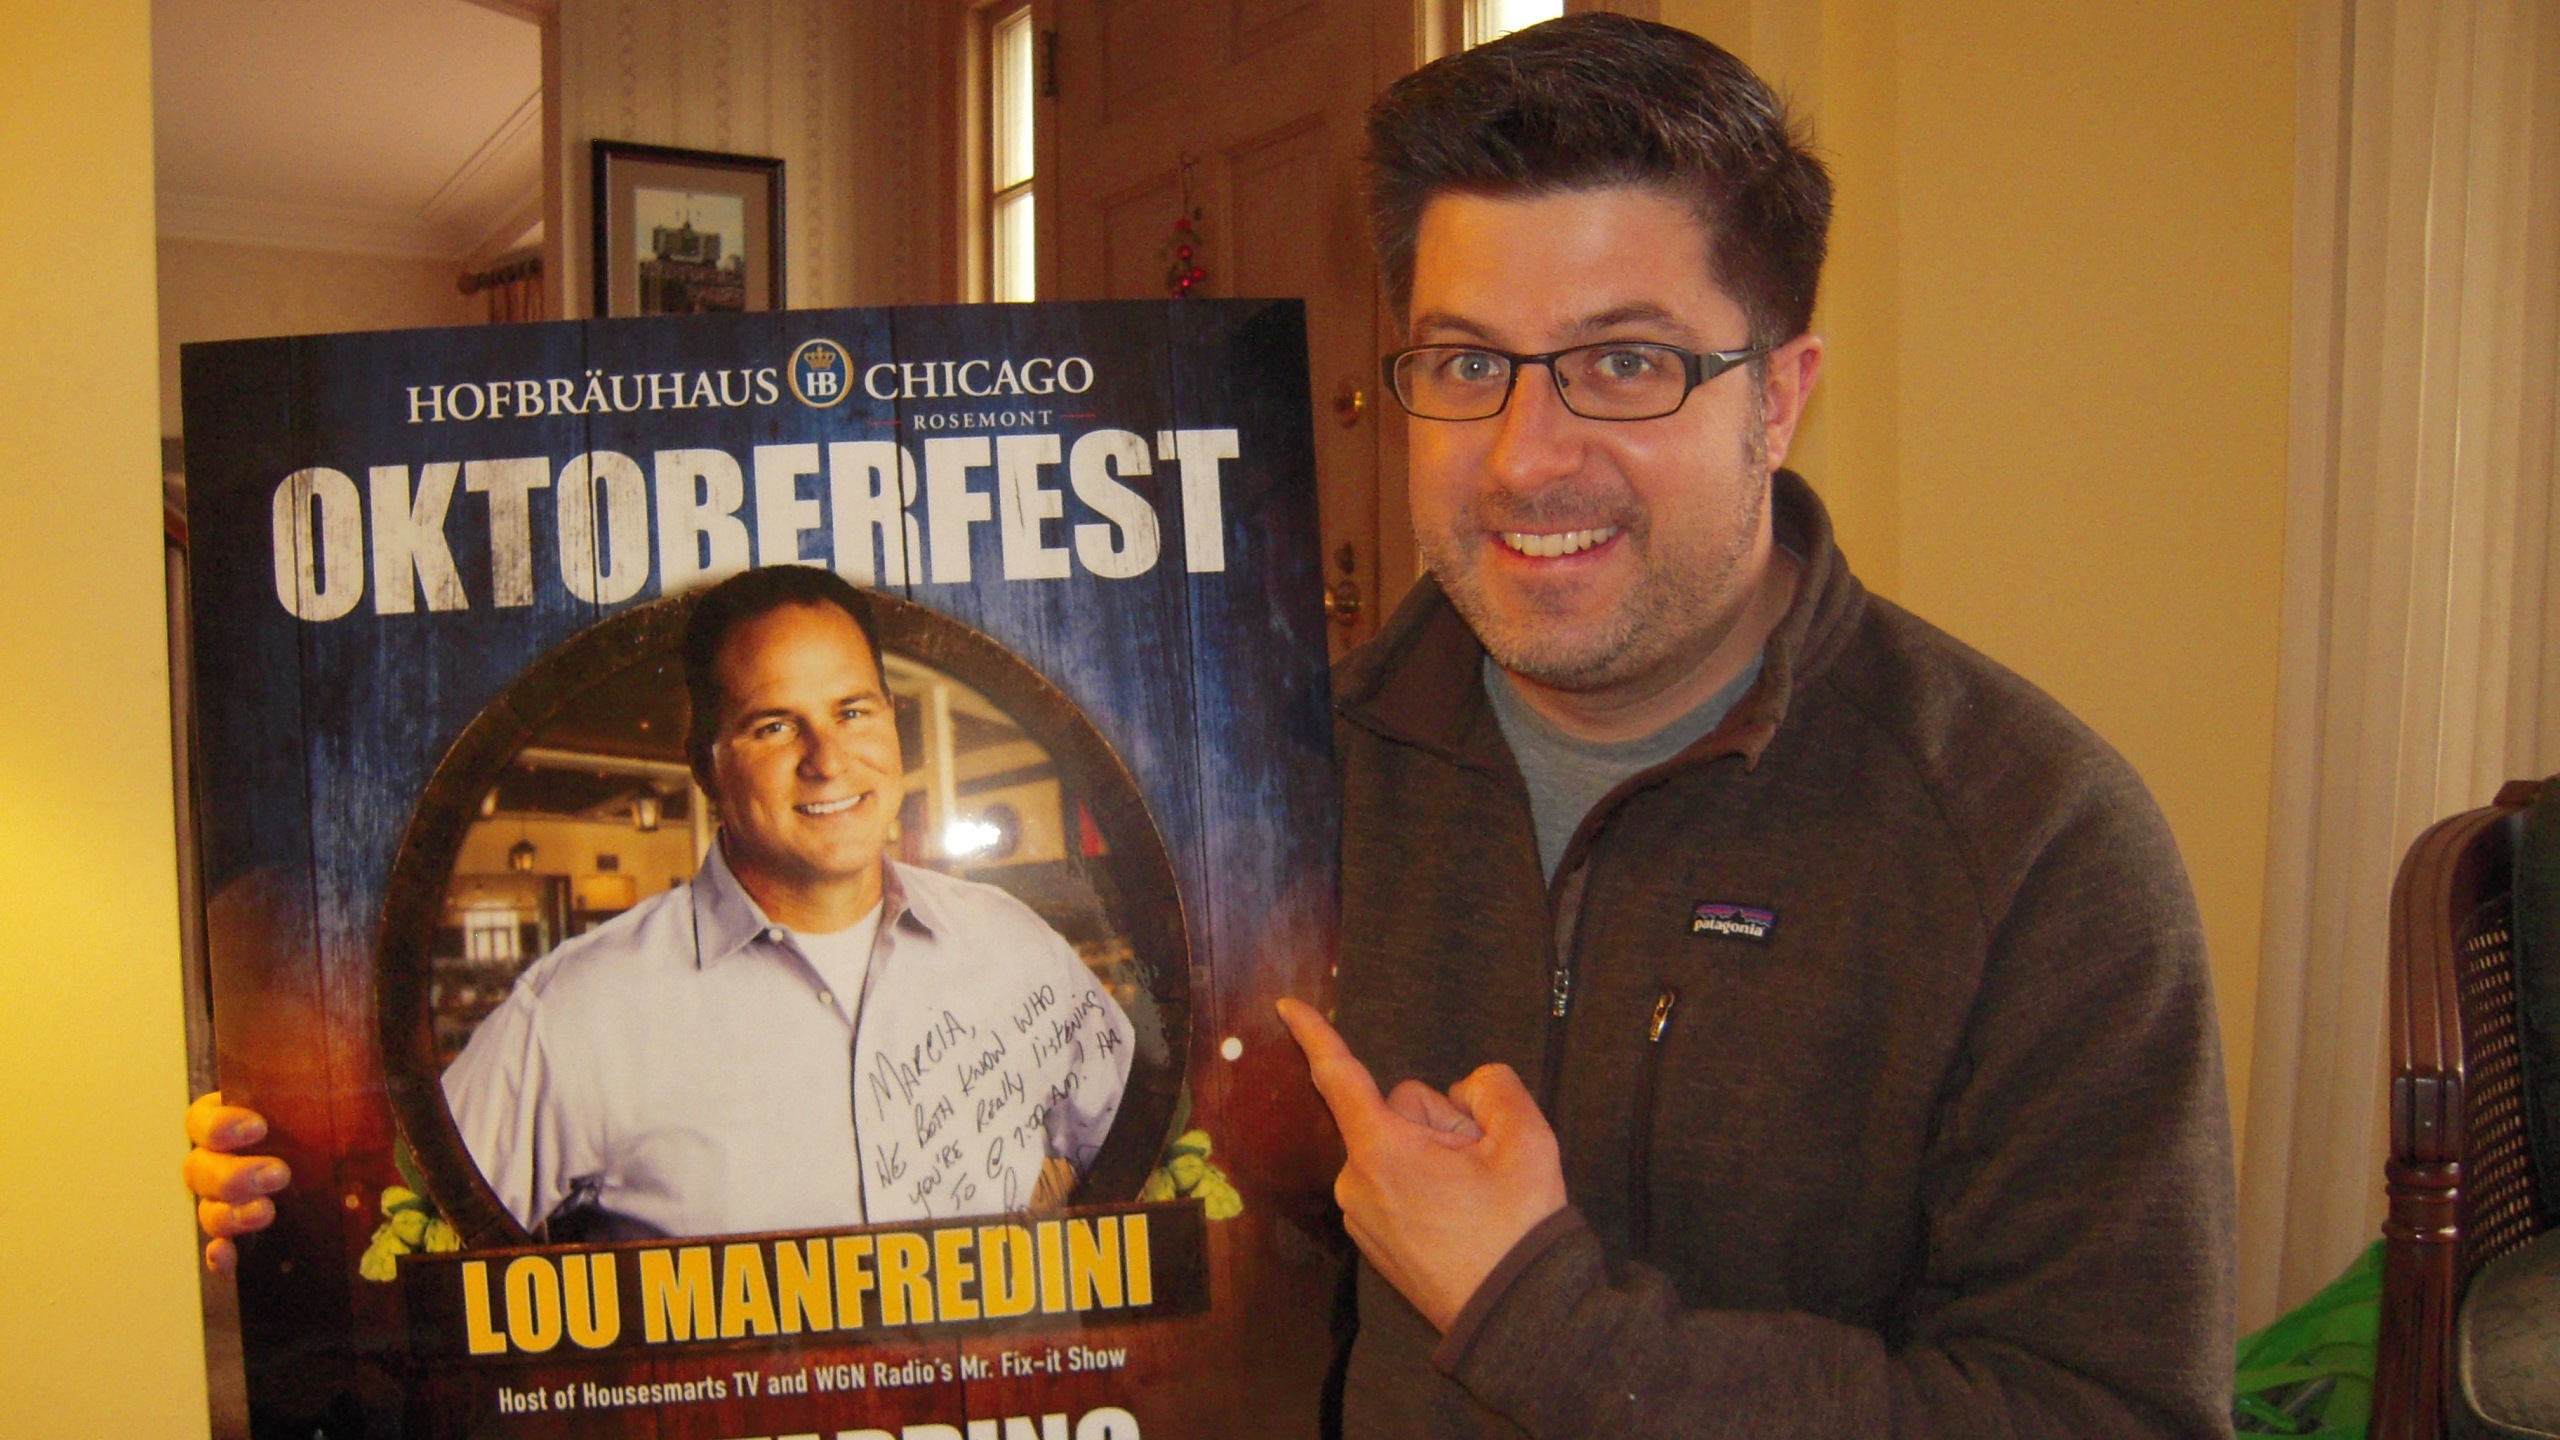 OTL host Mike Stephen poses with his mom's prized Lou Manfredini poster. [not pictured: Mrs. Stephen]